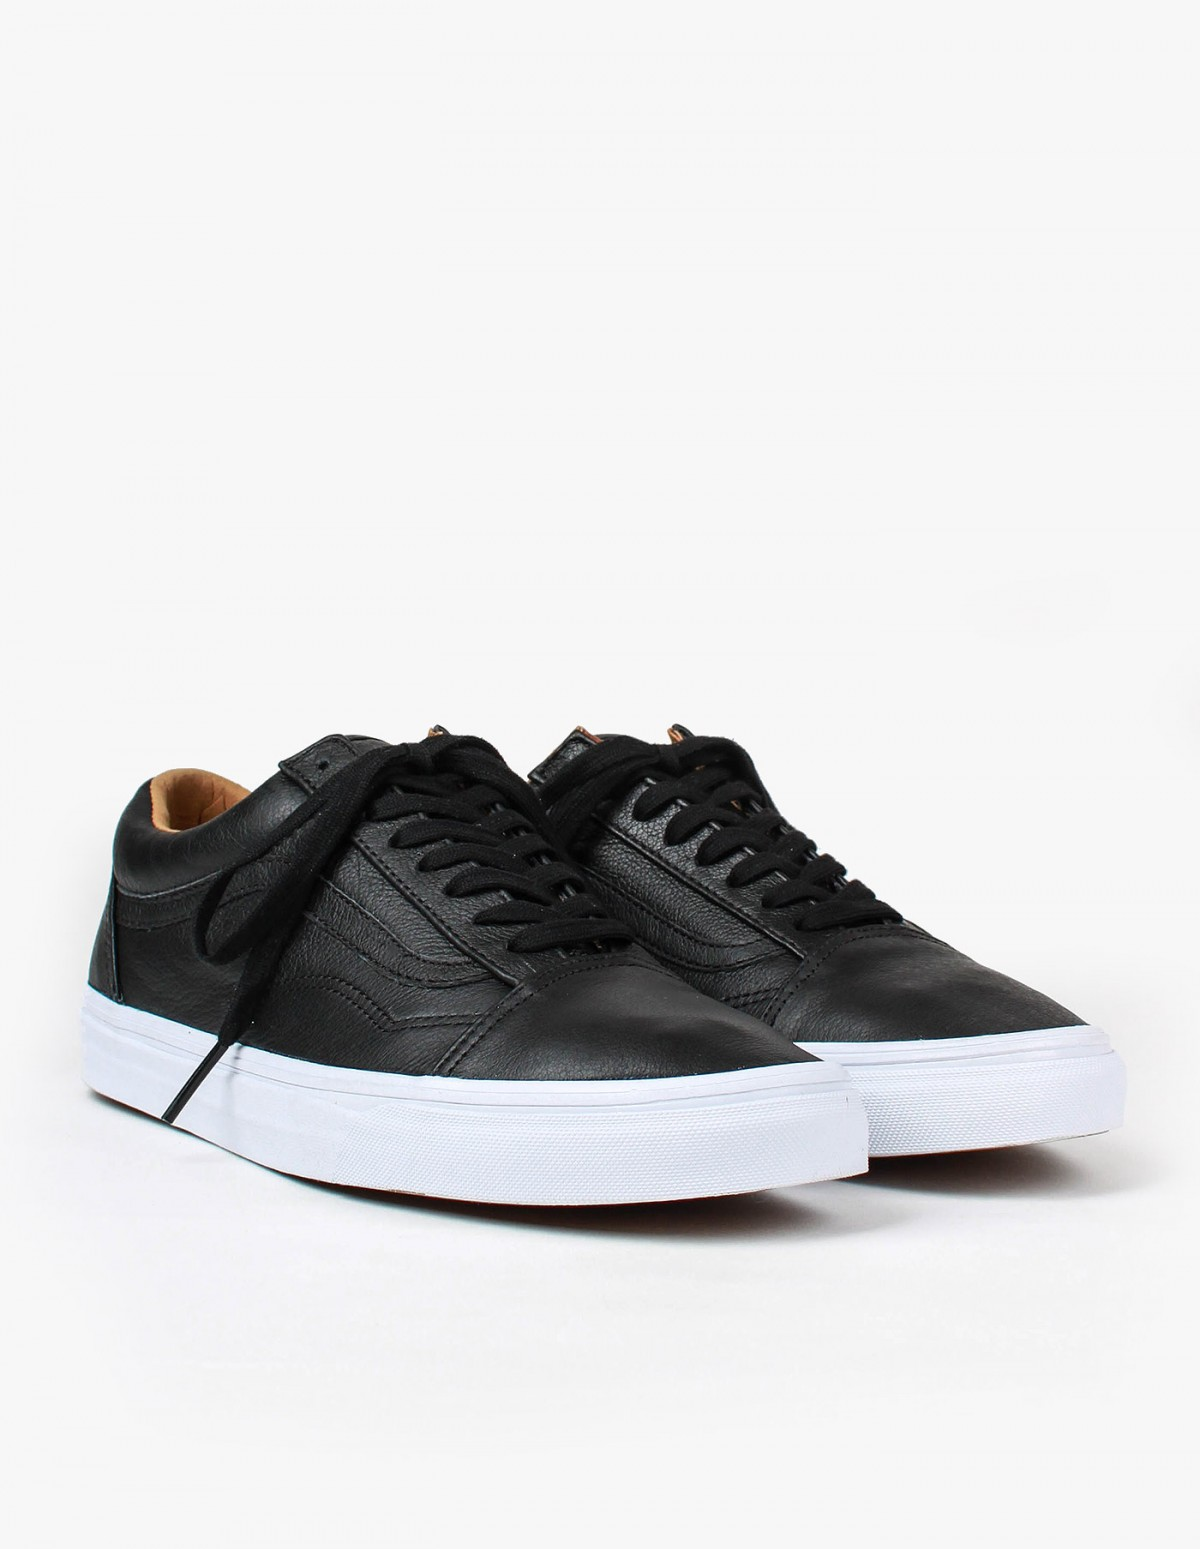 Vans Old Skool in Black Premium Leather